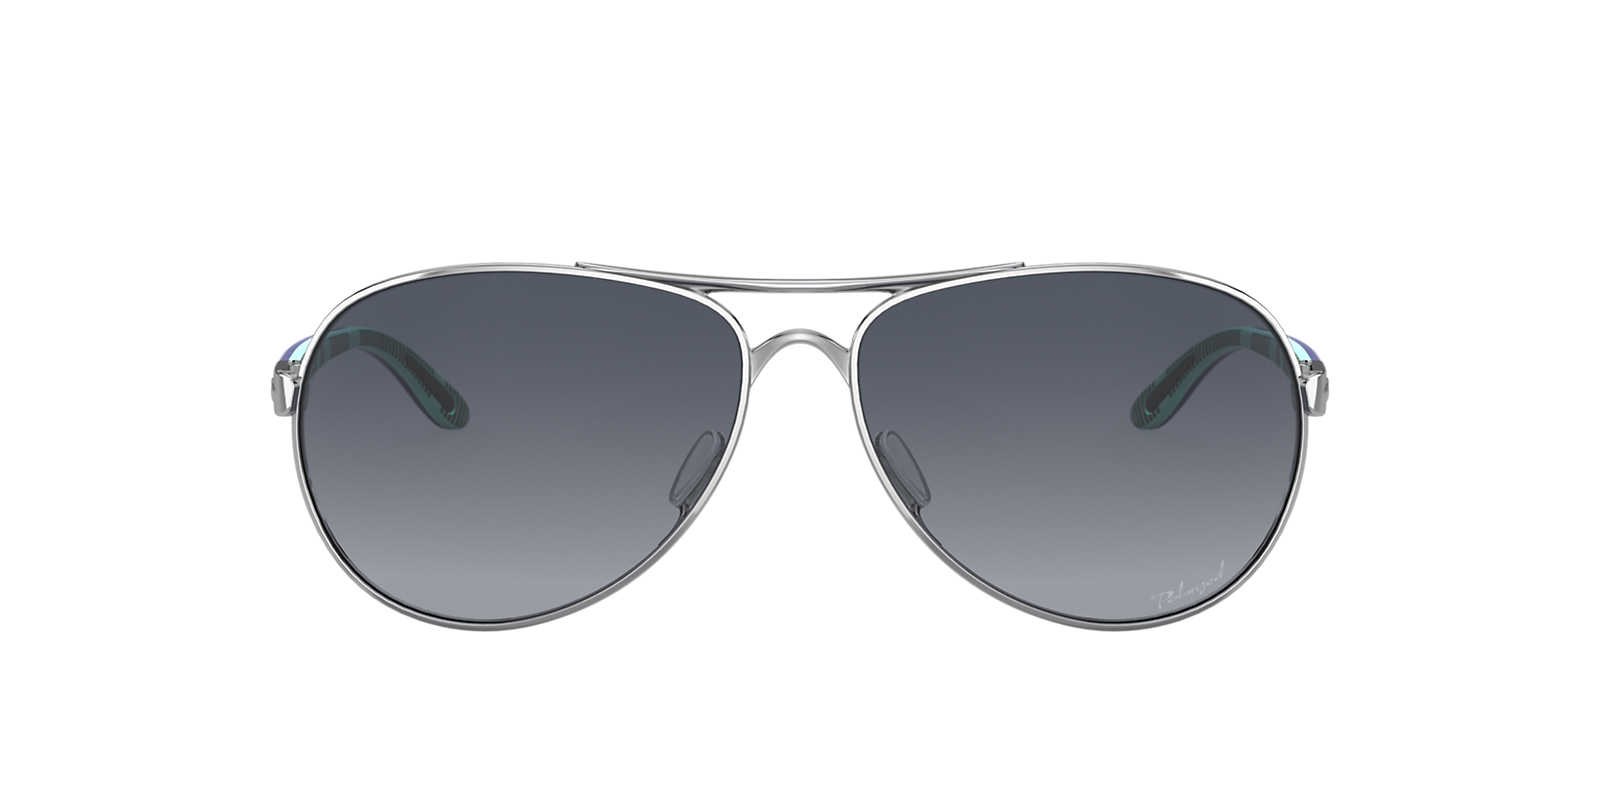 oakley womens sunglasses given  oakley women's